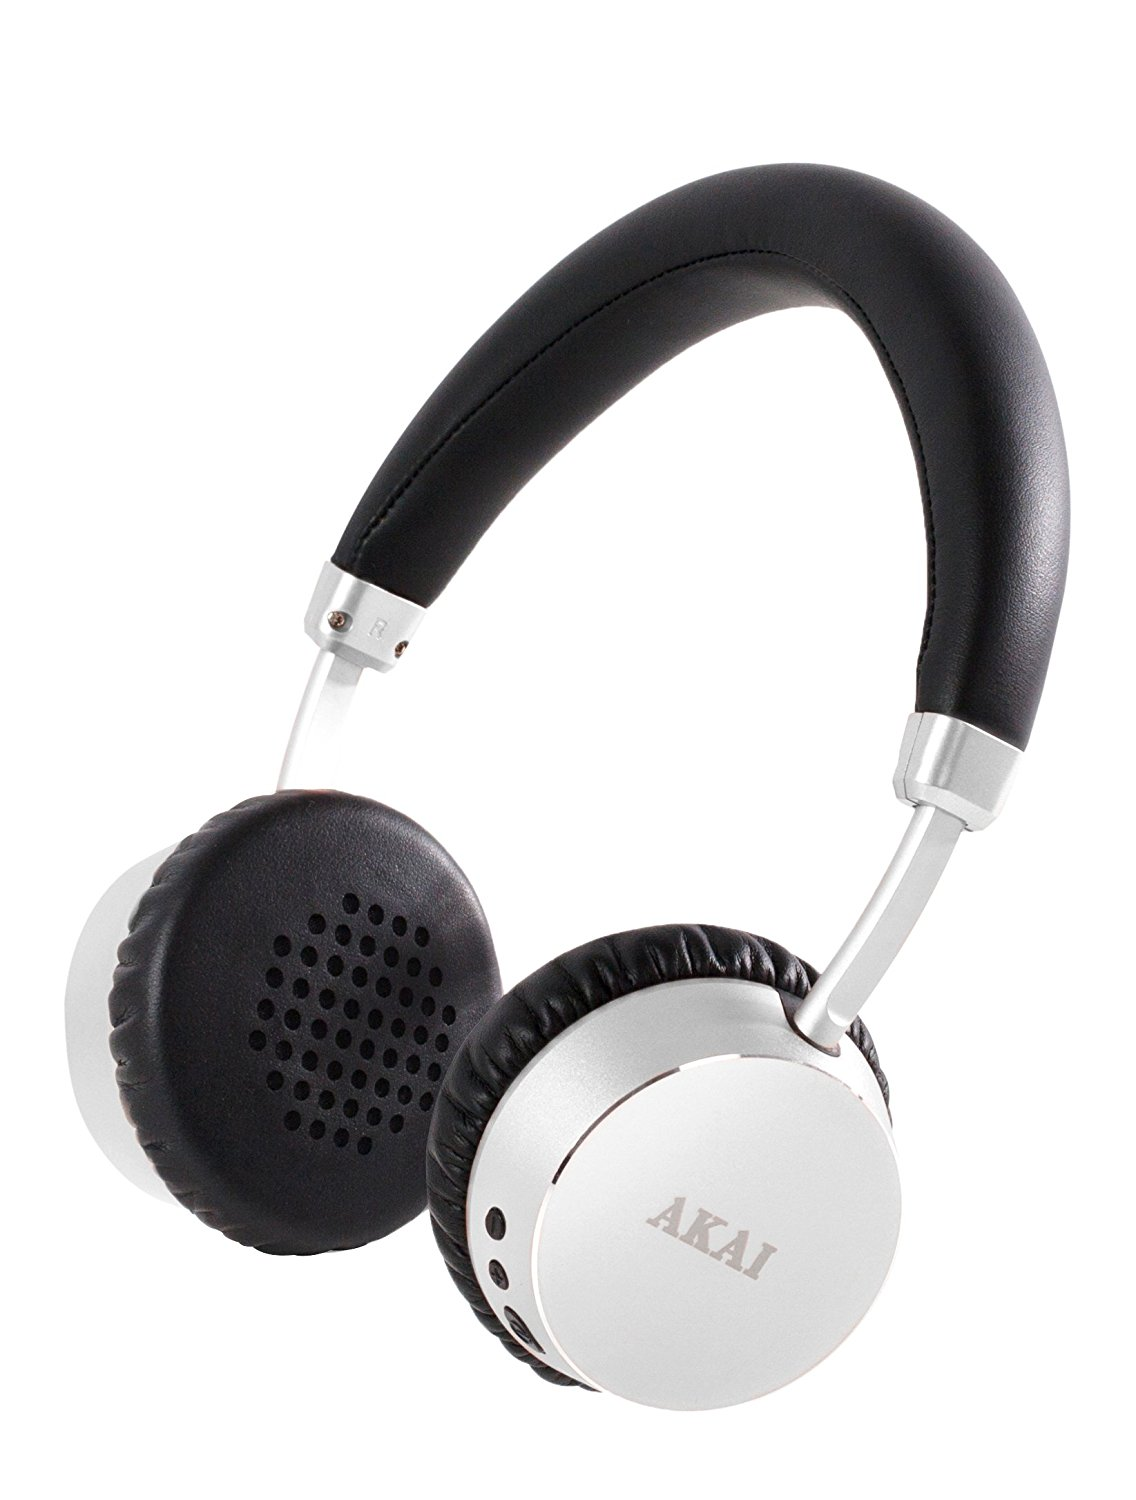 Akai A58044 Dynamx Wireless Headphones with Bluetooth Connection, Built in Microphone for iPhone, iP